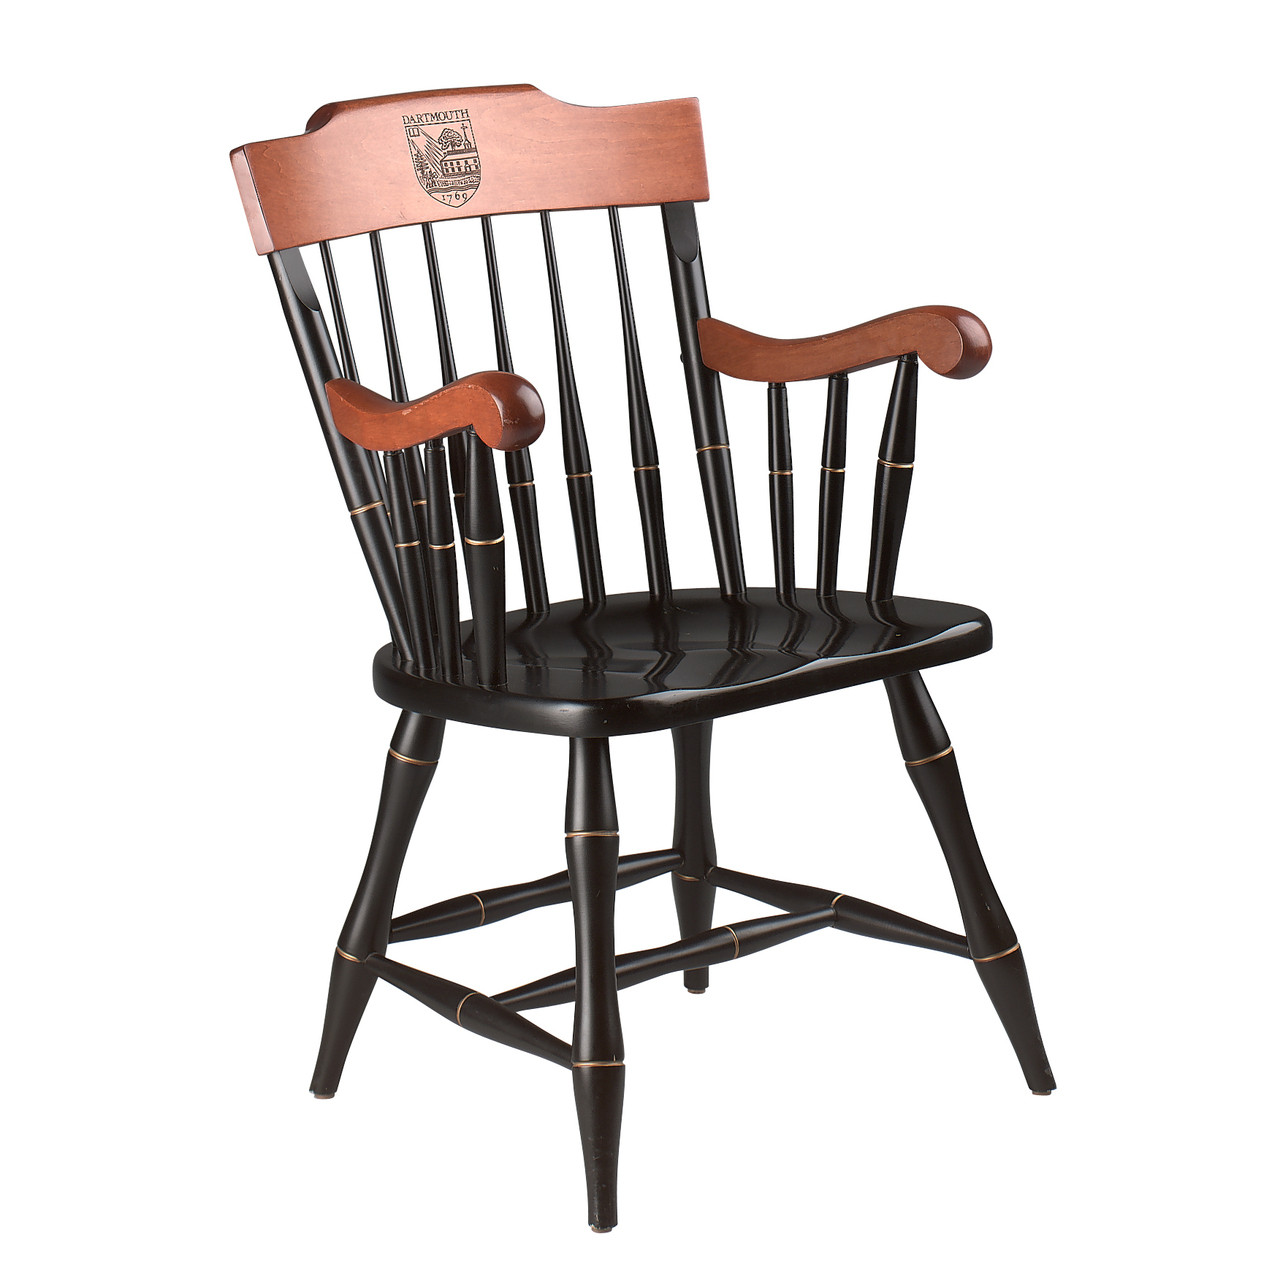 sc 1 st  Dartmouth Coop & Dartmouth Wooden Captainu0027s Chair Captainu0027s Chair with Dartm